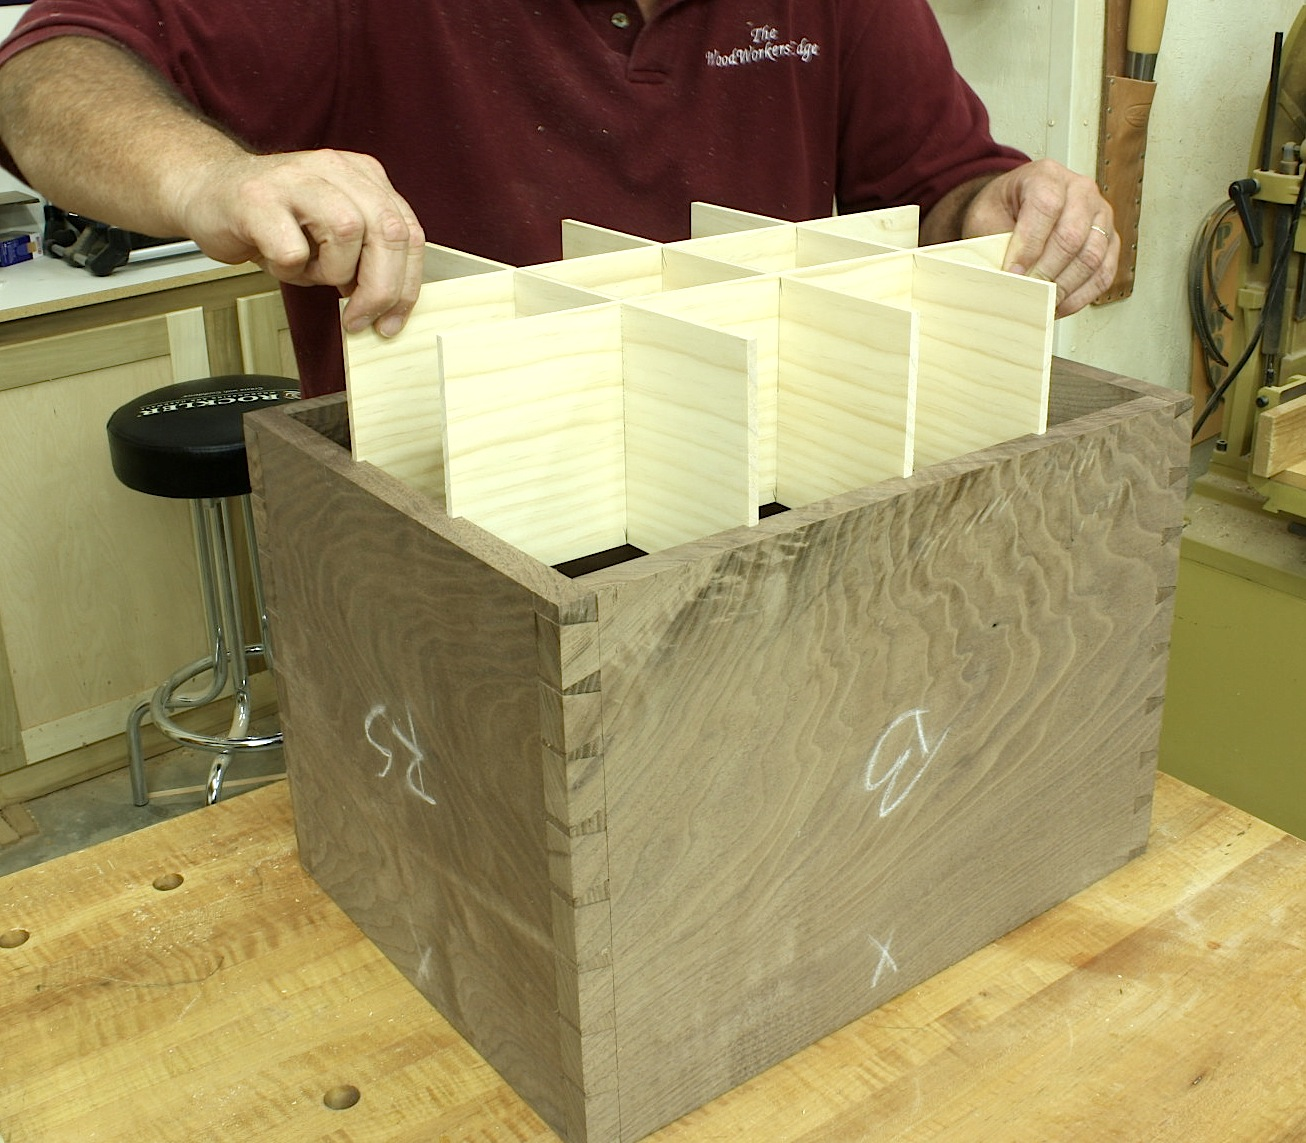 A Simple Jig For Bottle Dividers Egg Crate Joints